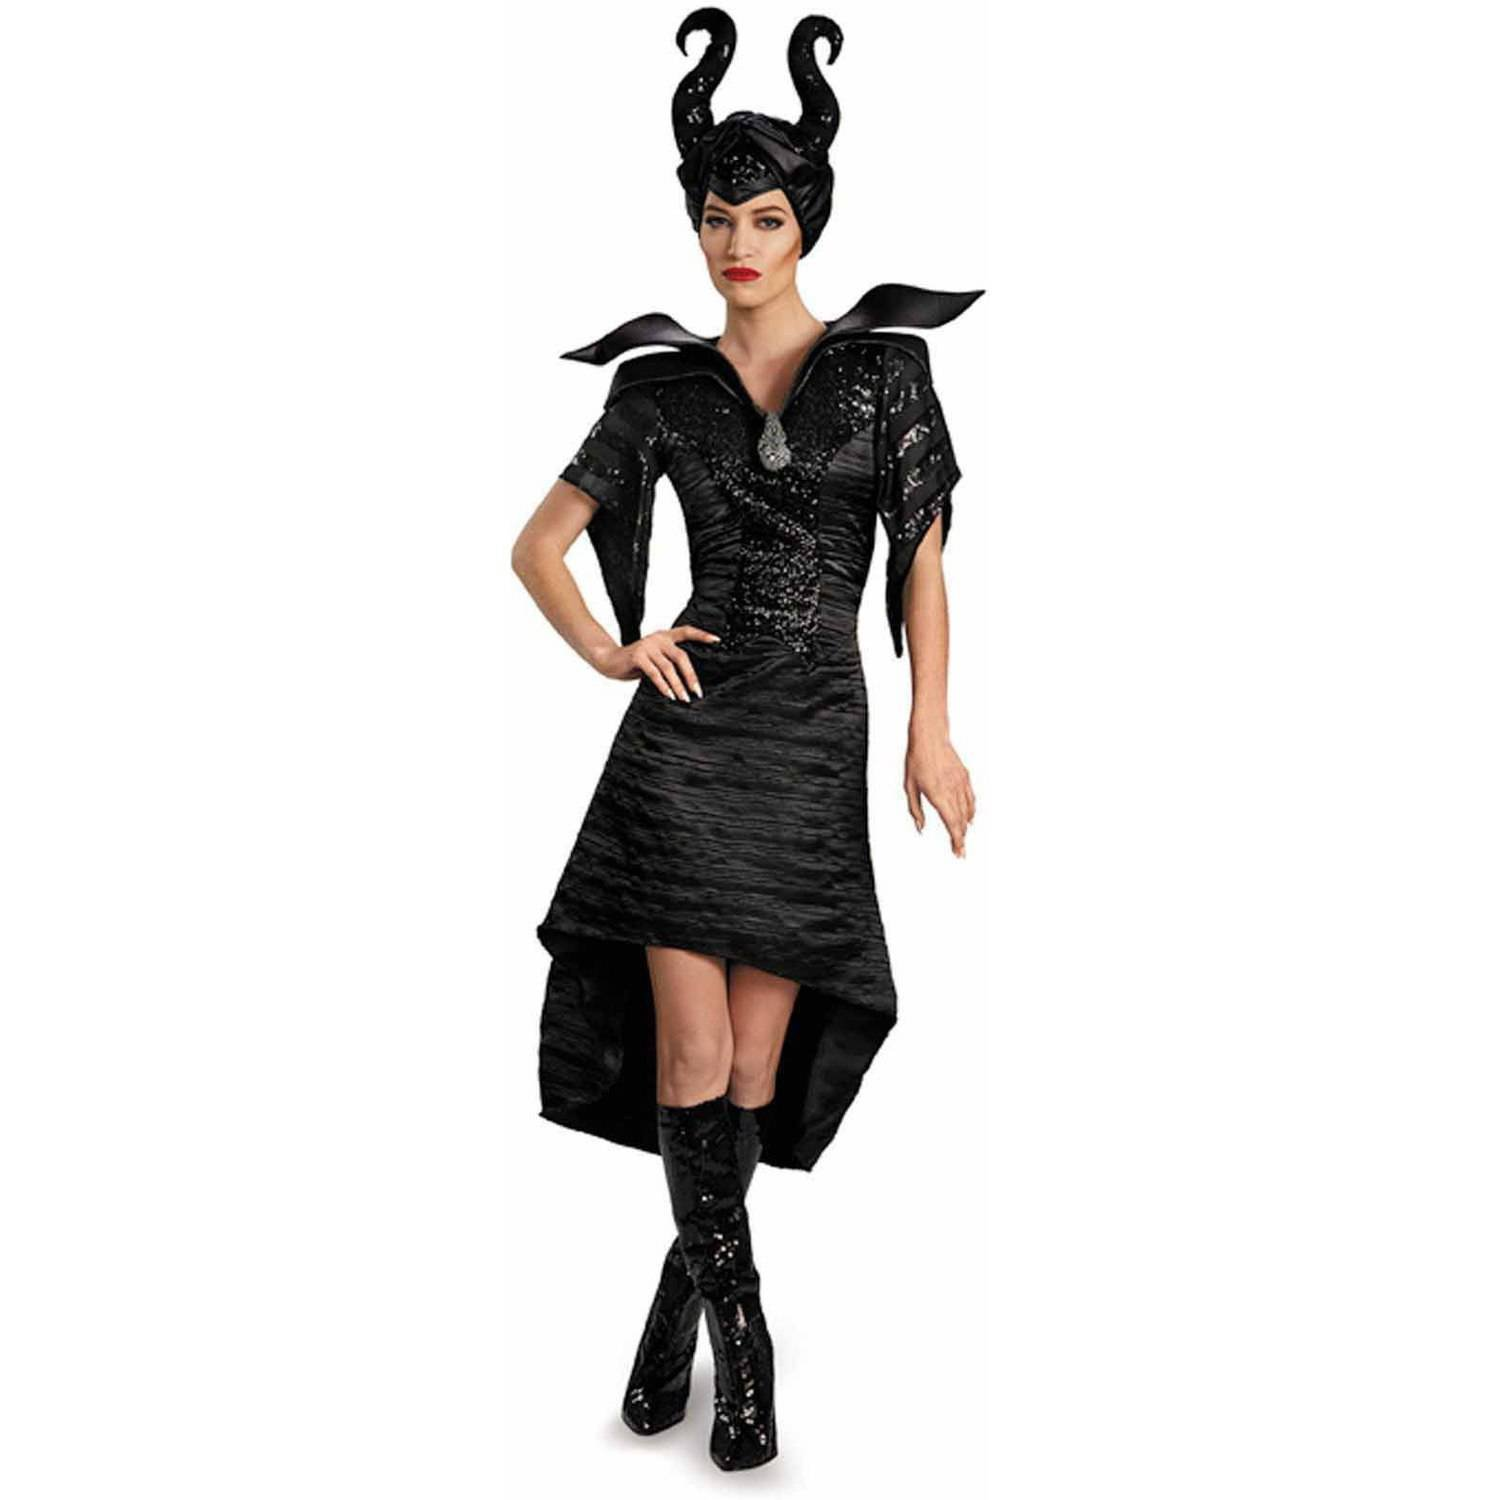 Size Small: 71833N Disney Maleficent Glam Christening Gown Adult Costume